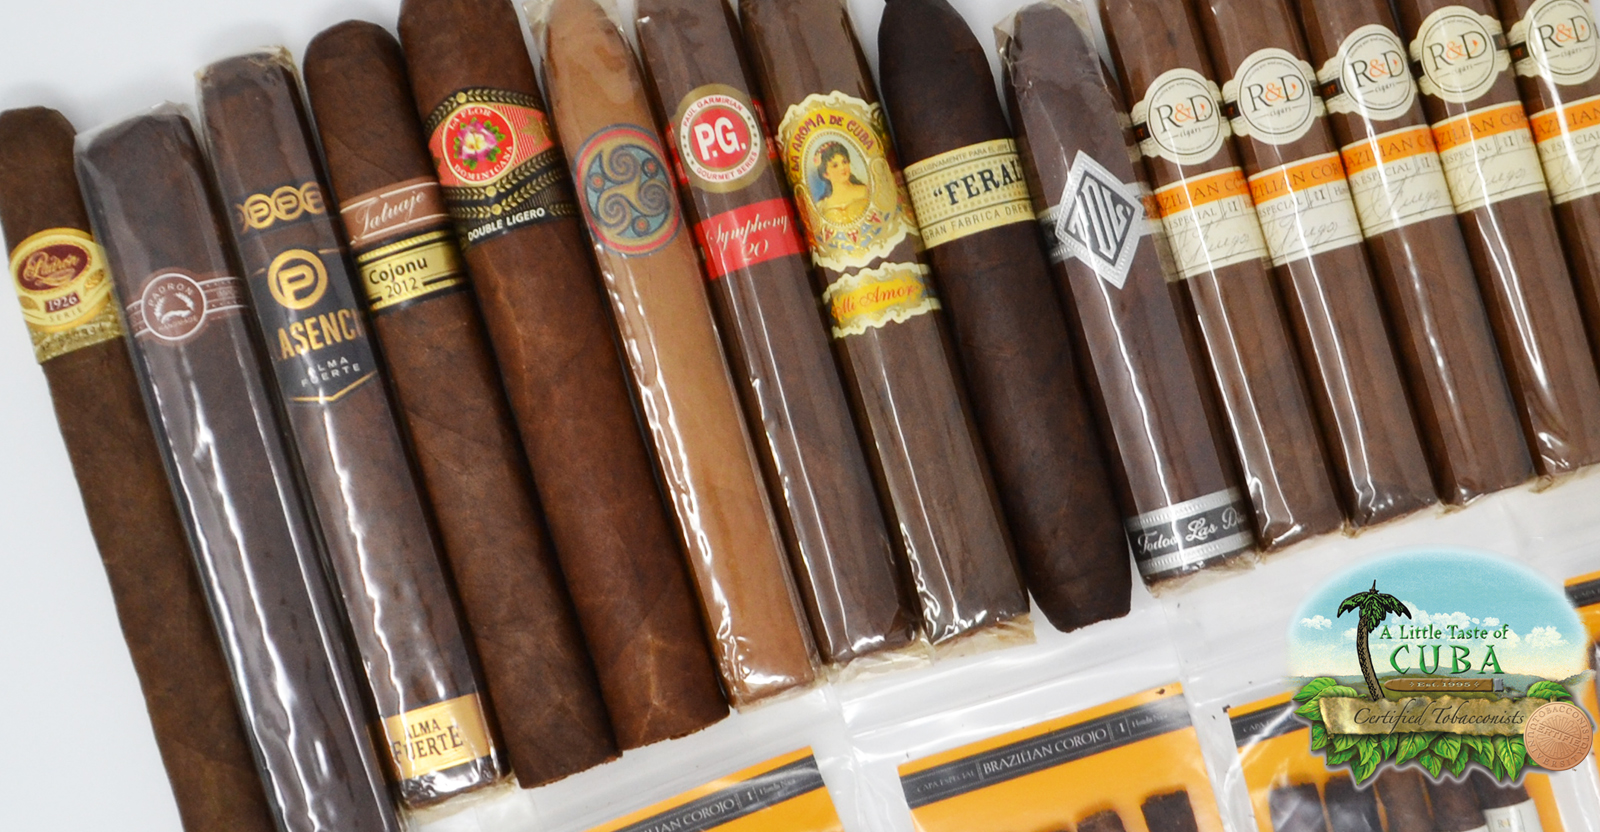 Any 10 Or More Cigars Gets 20% Discount